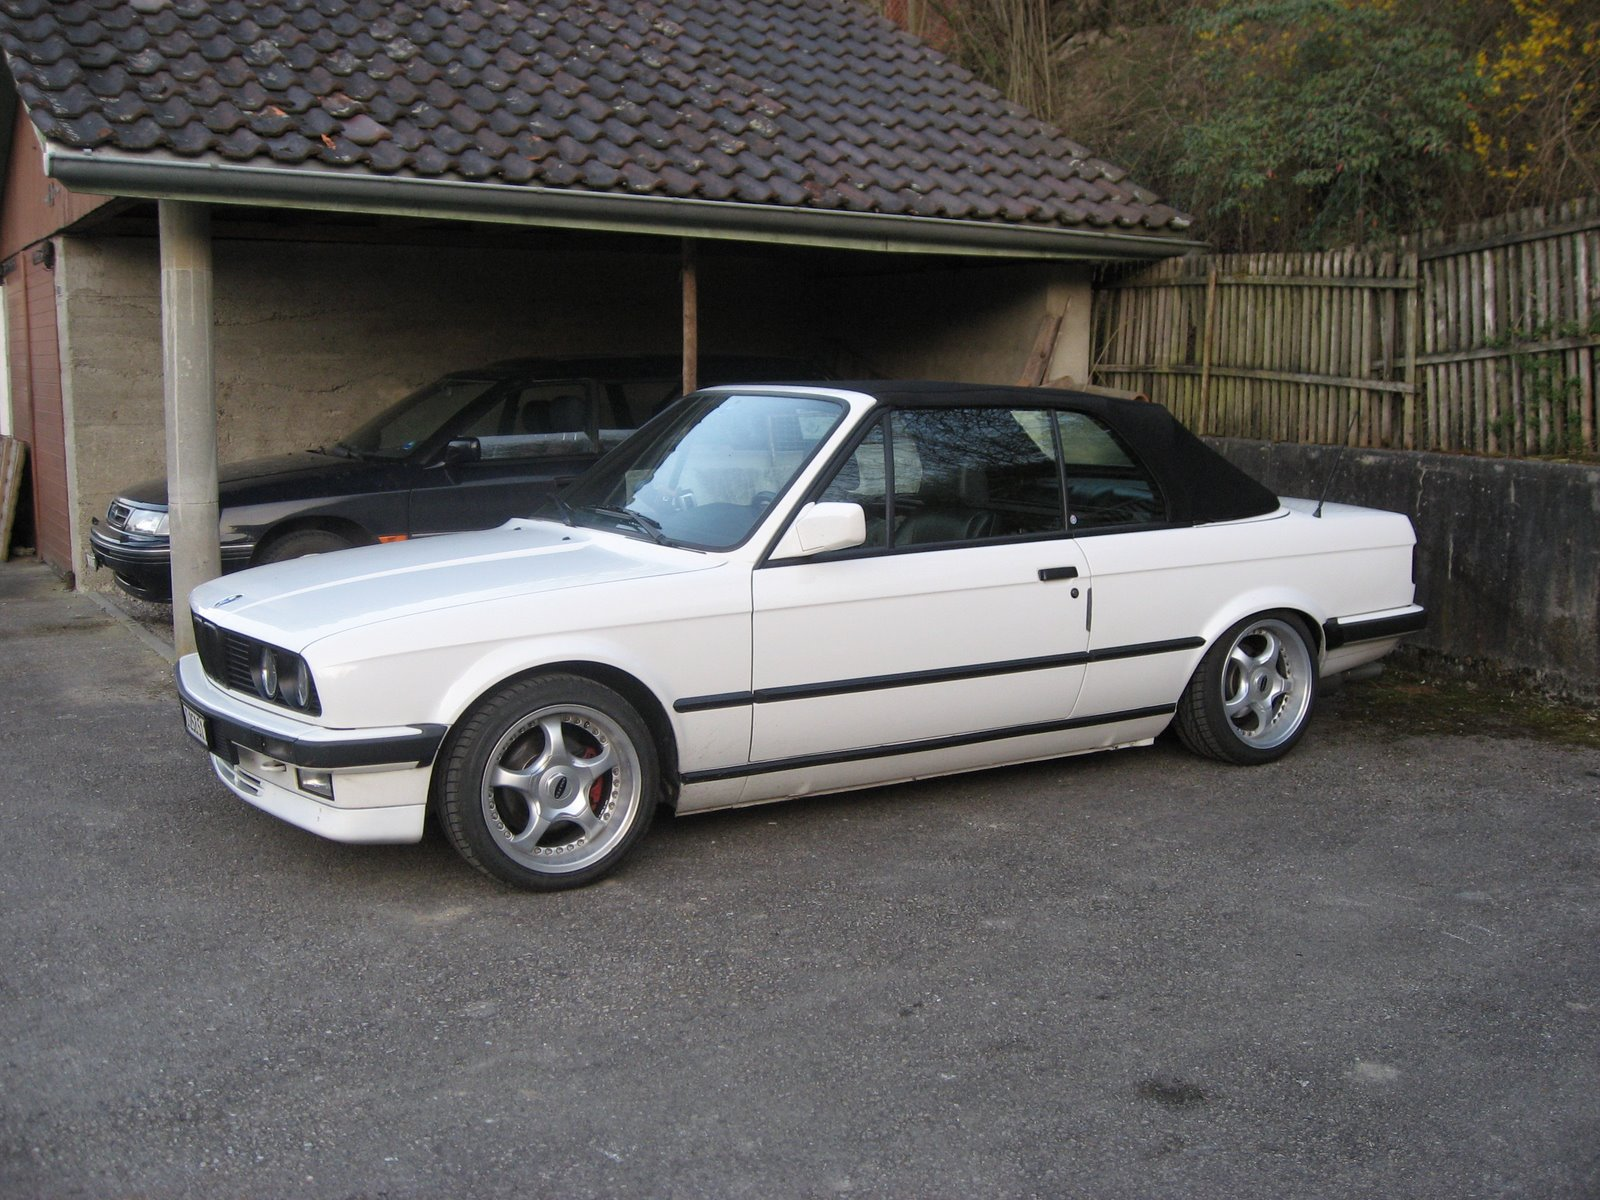 BMW 3 series 323i 1989 photo - 4